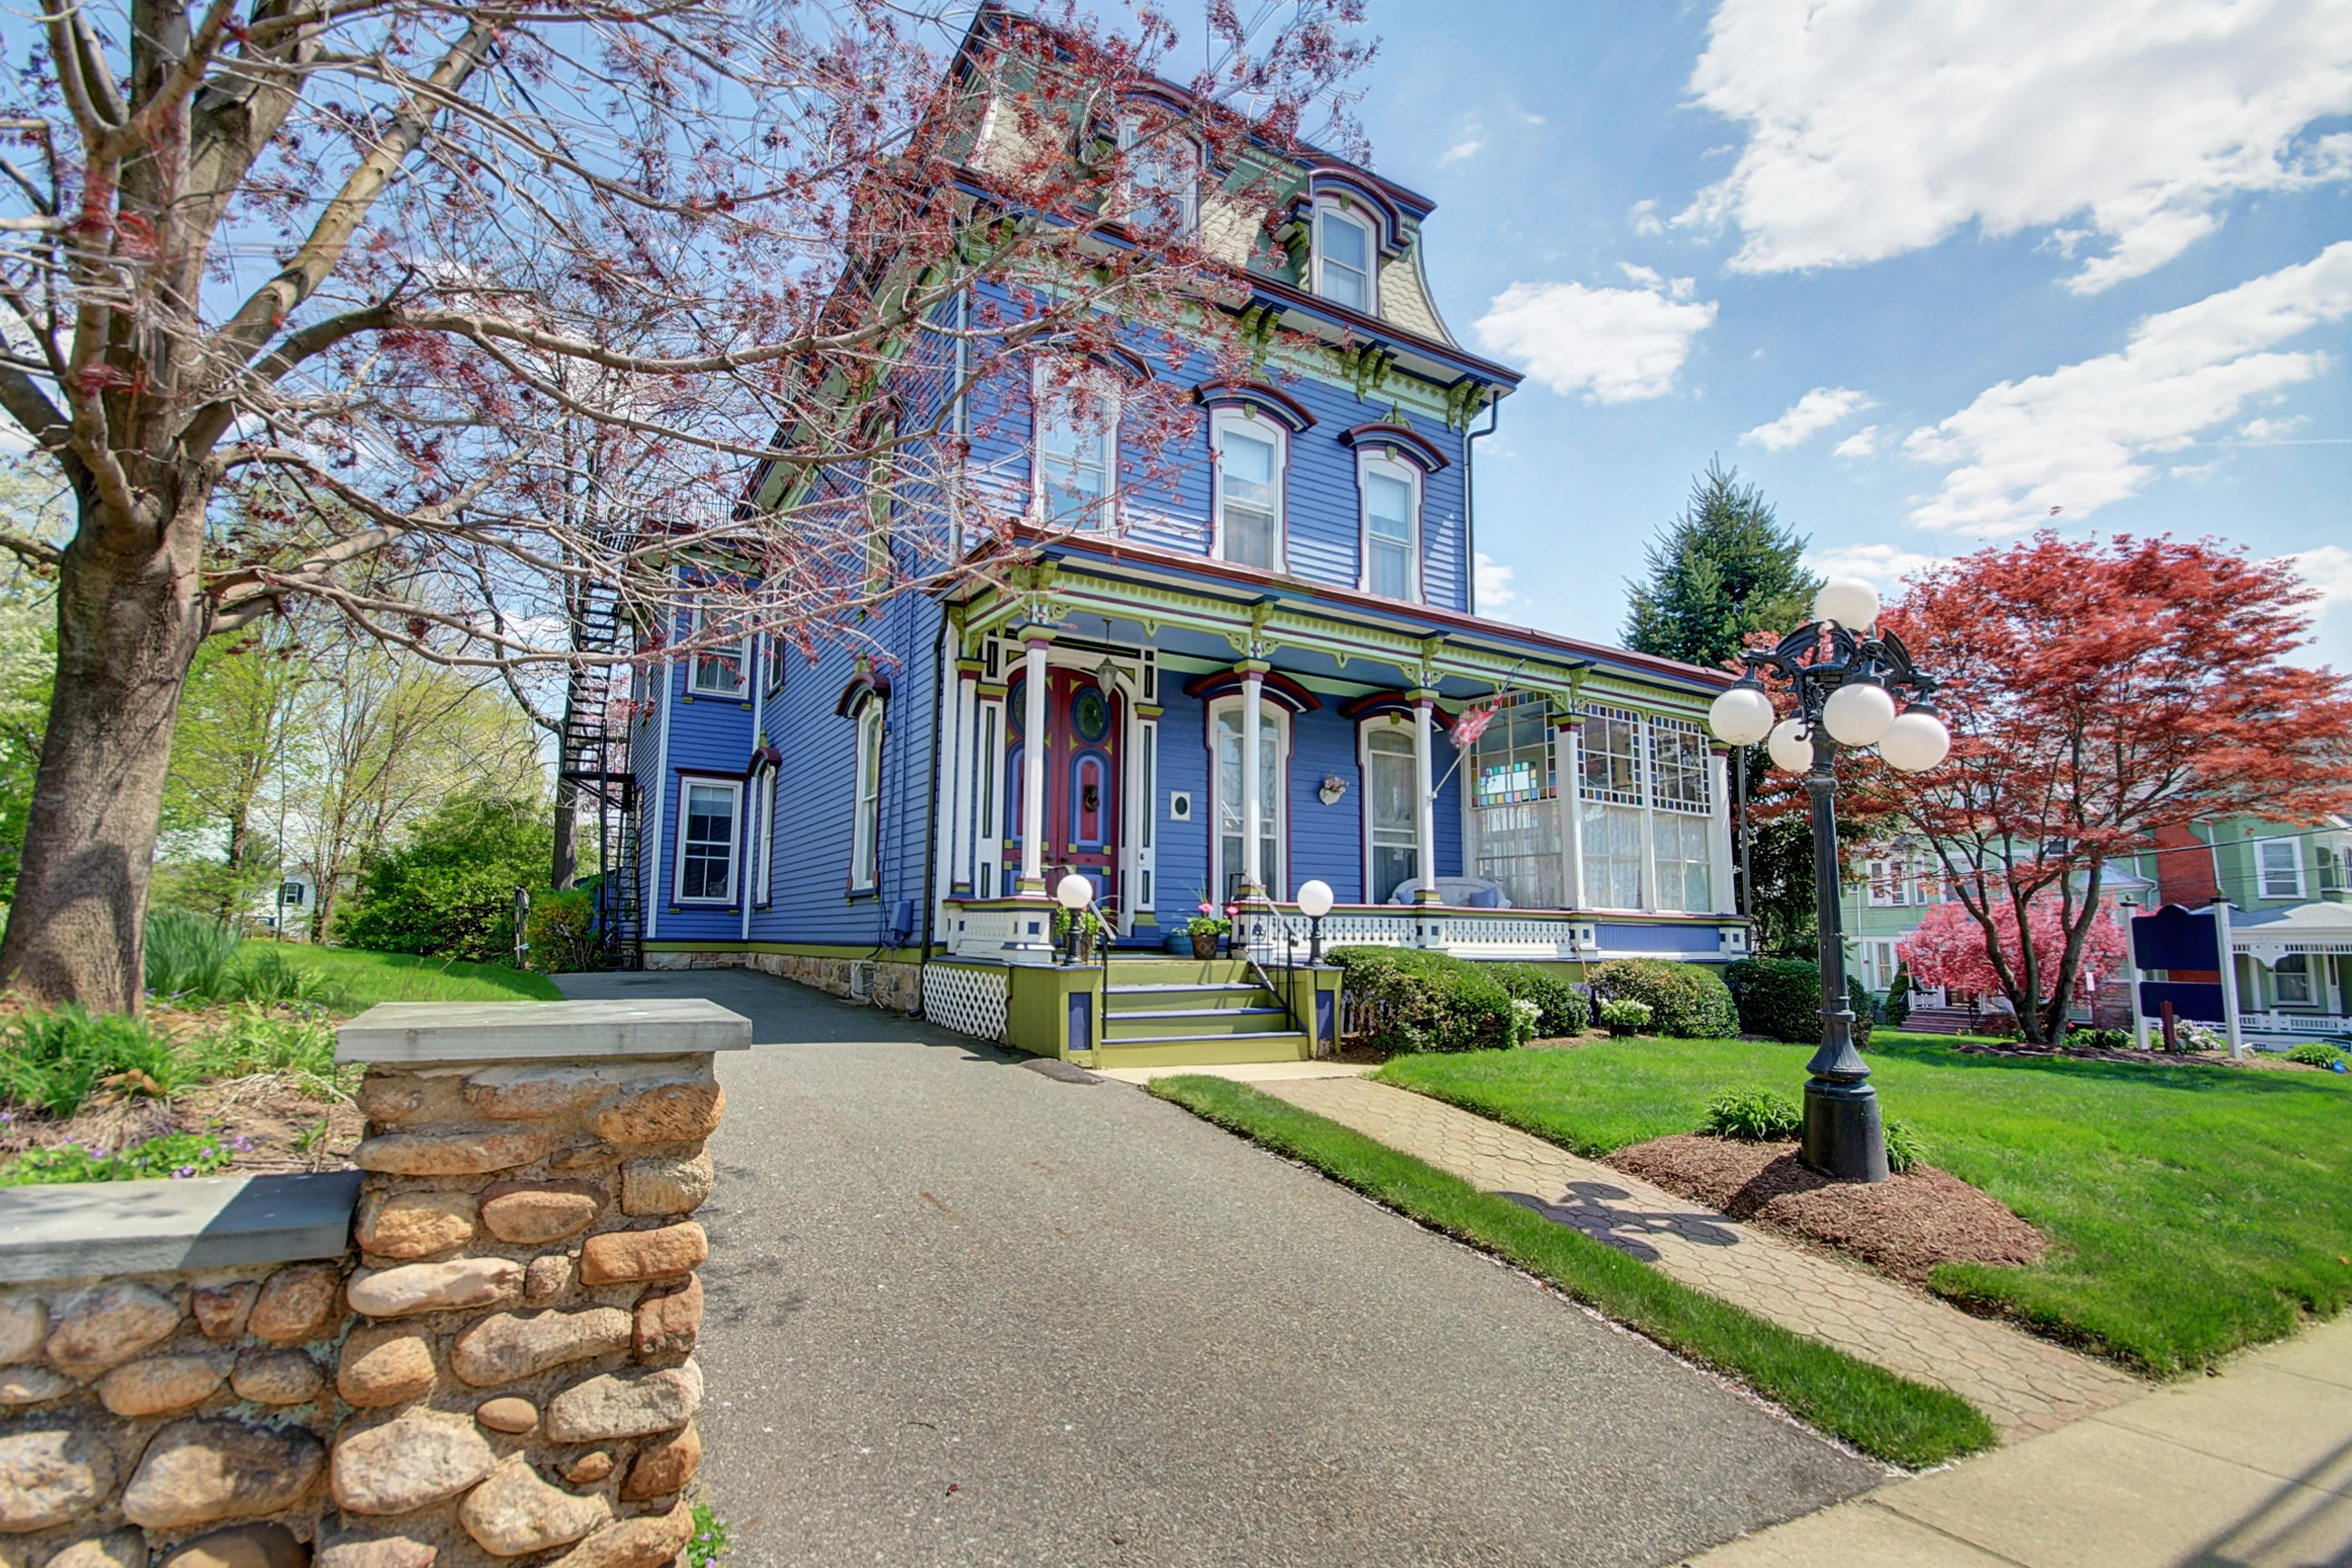 Single Family Home for Sale at The Everitt House 200 High Street Hackettstown, New Jersey 07840 United States